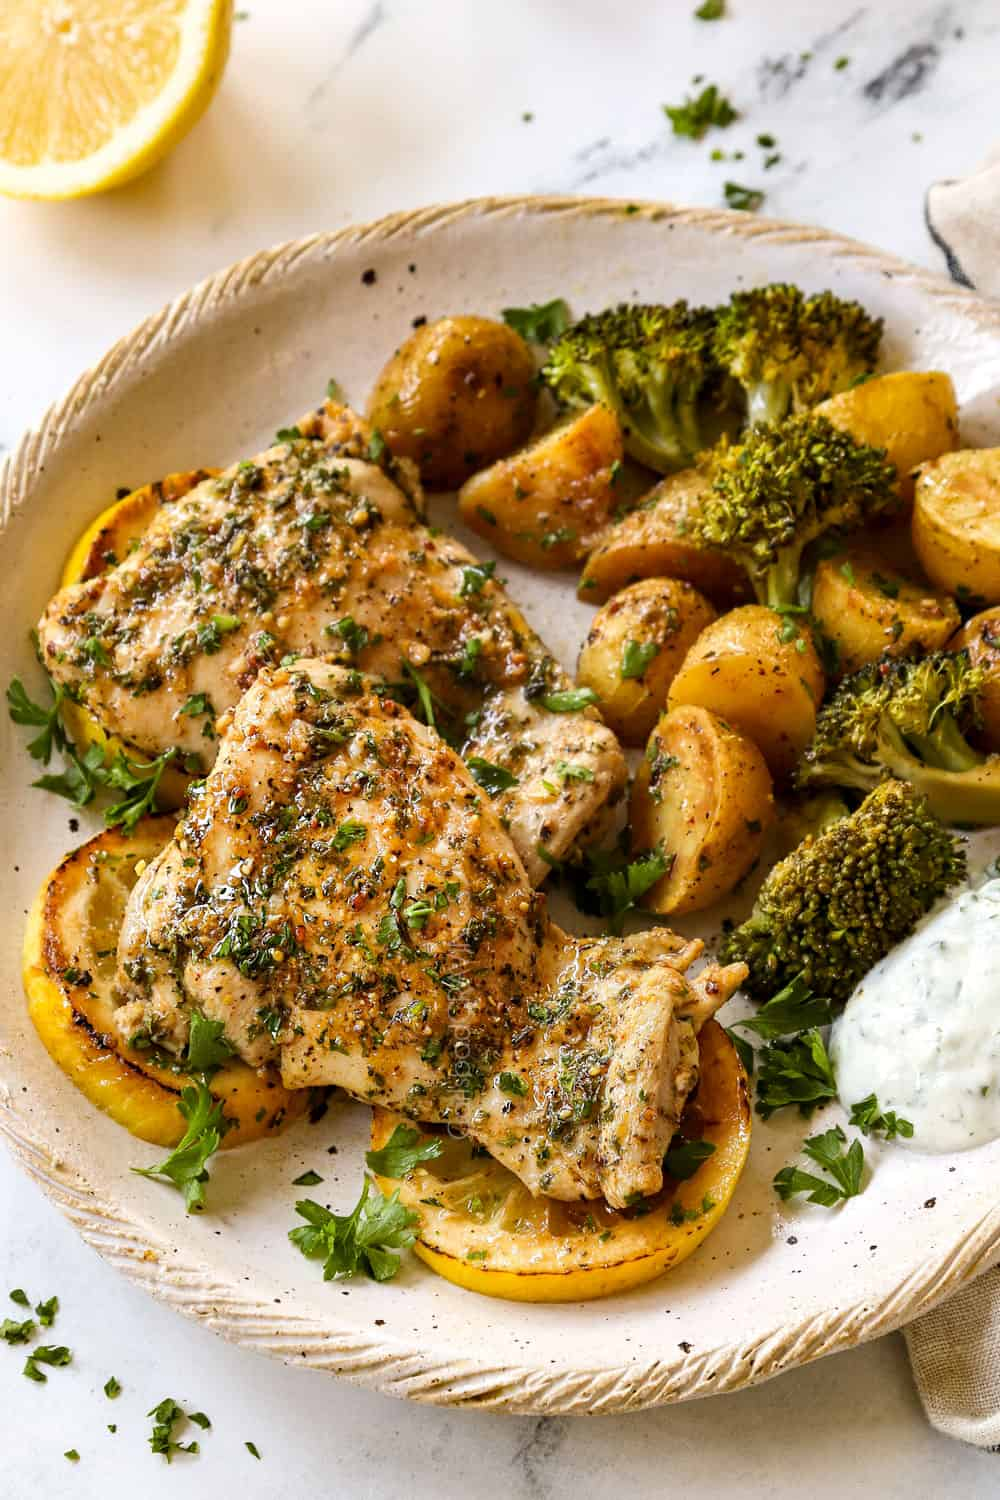 showing how to serve baked lemon garlic chicken thighs by serving on a plate with potatoes, broccoli and yogurt sauce